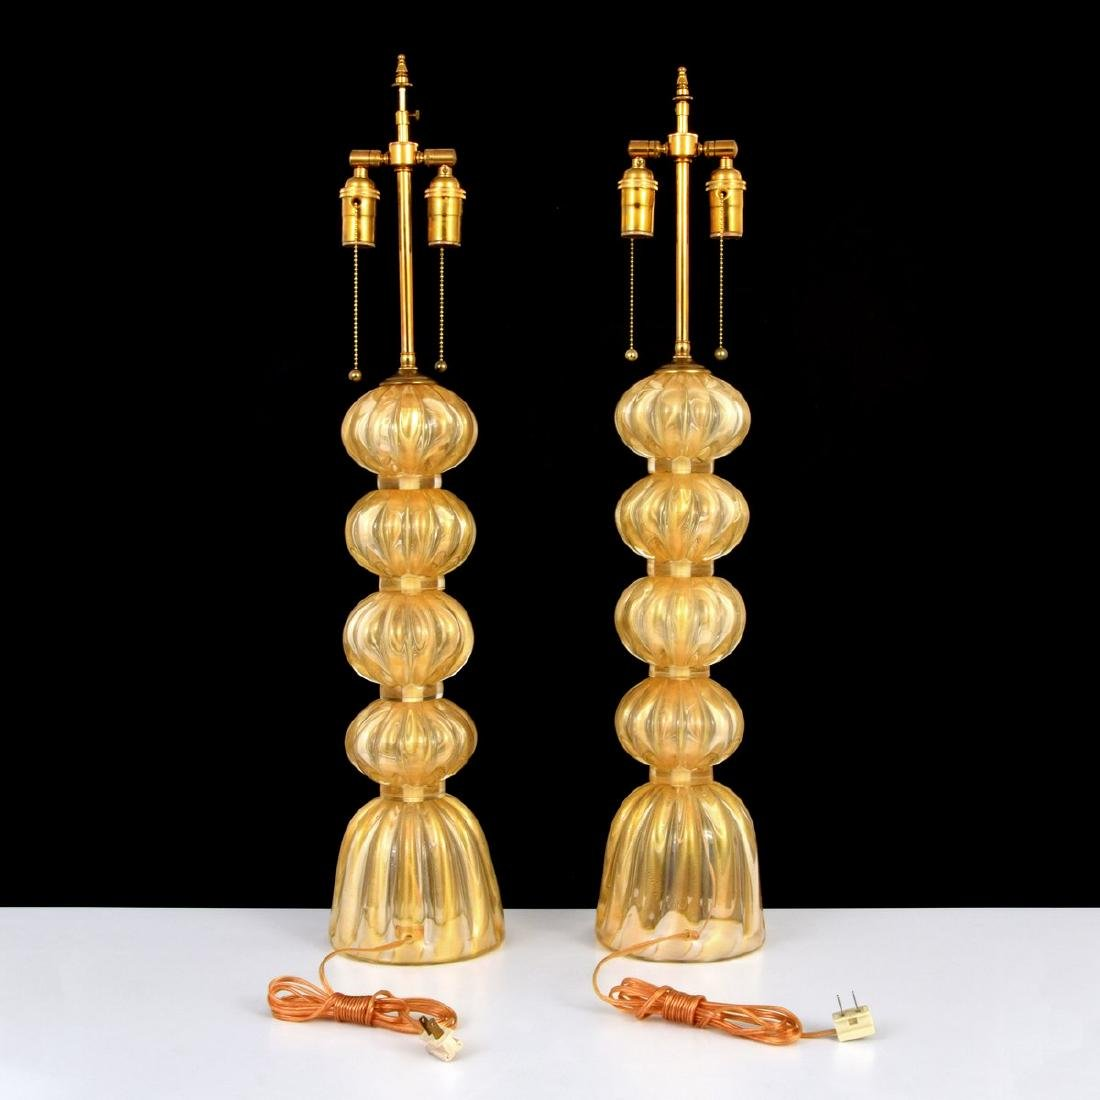 Pair of Large Murano Lamps, Manner of Barovier & Toso - 3